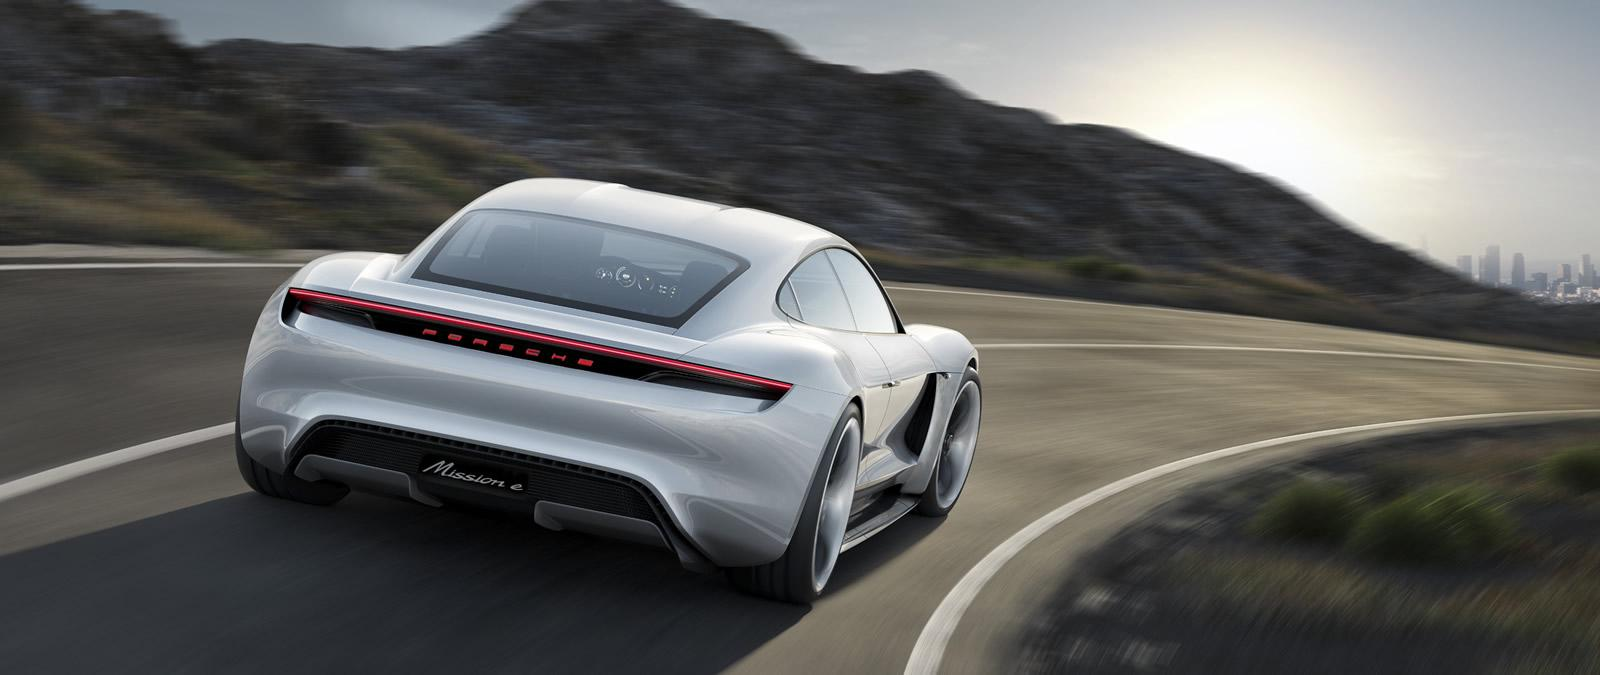 Porsche Mission E To Get Competitive 85 000 Starting Price In The